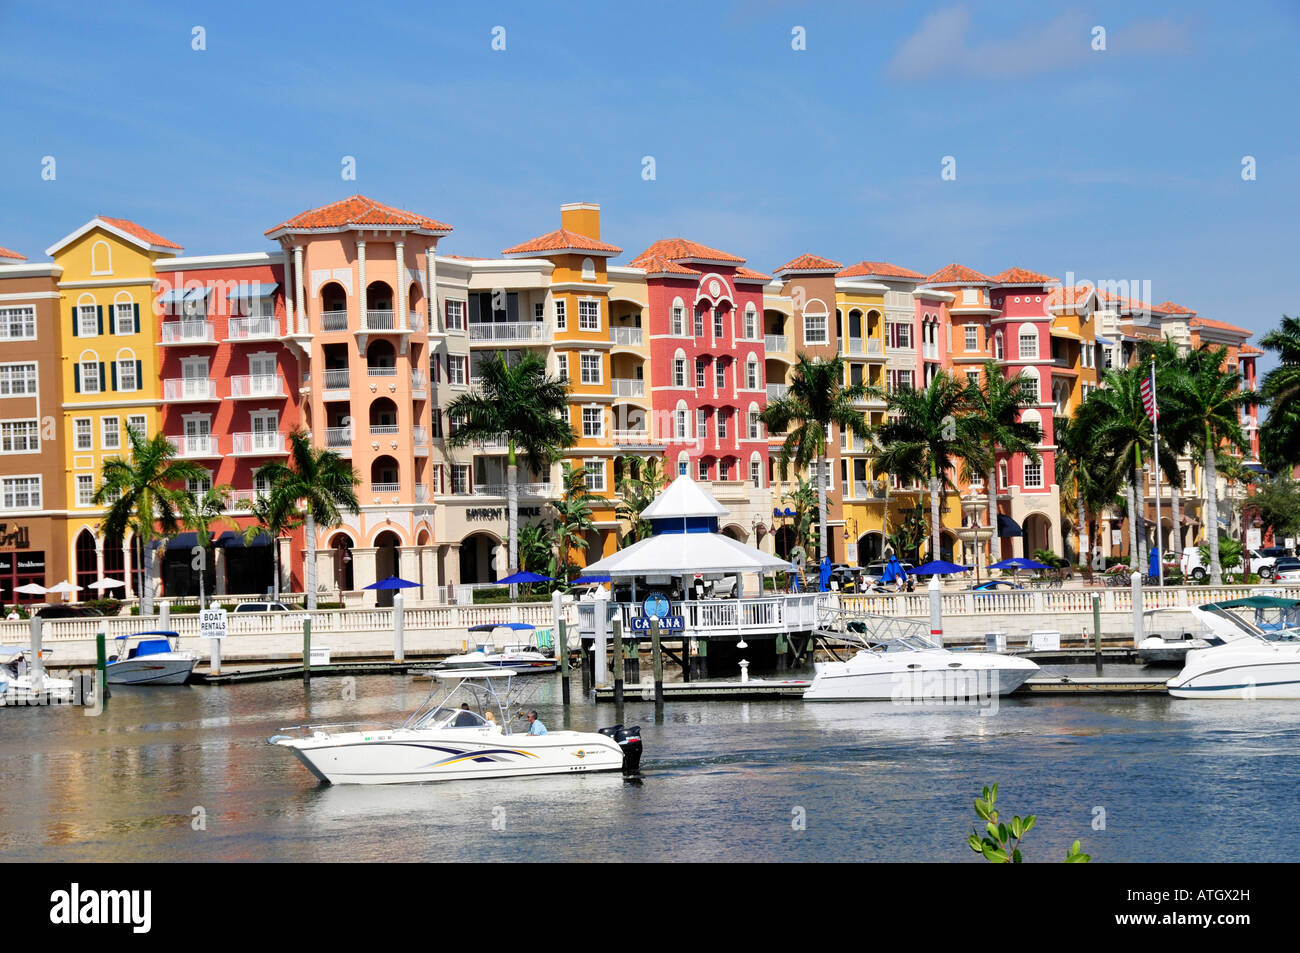 Oct 04, · Waterside Shops is a very nicely appointed group of upscale shops and restaurants. The common areas are beautiful and calming, with very nice sitting areas. The stores are all designer names/5(K).